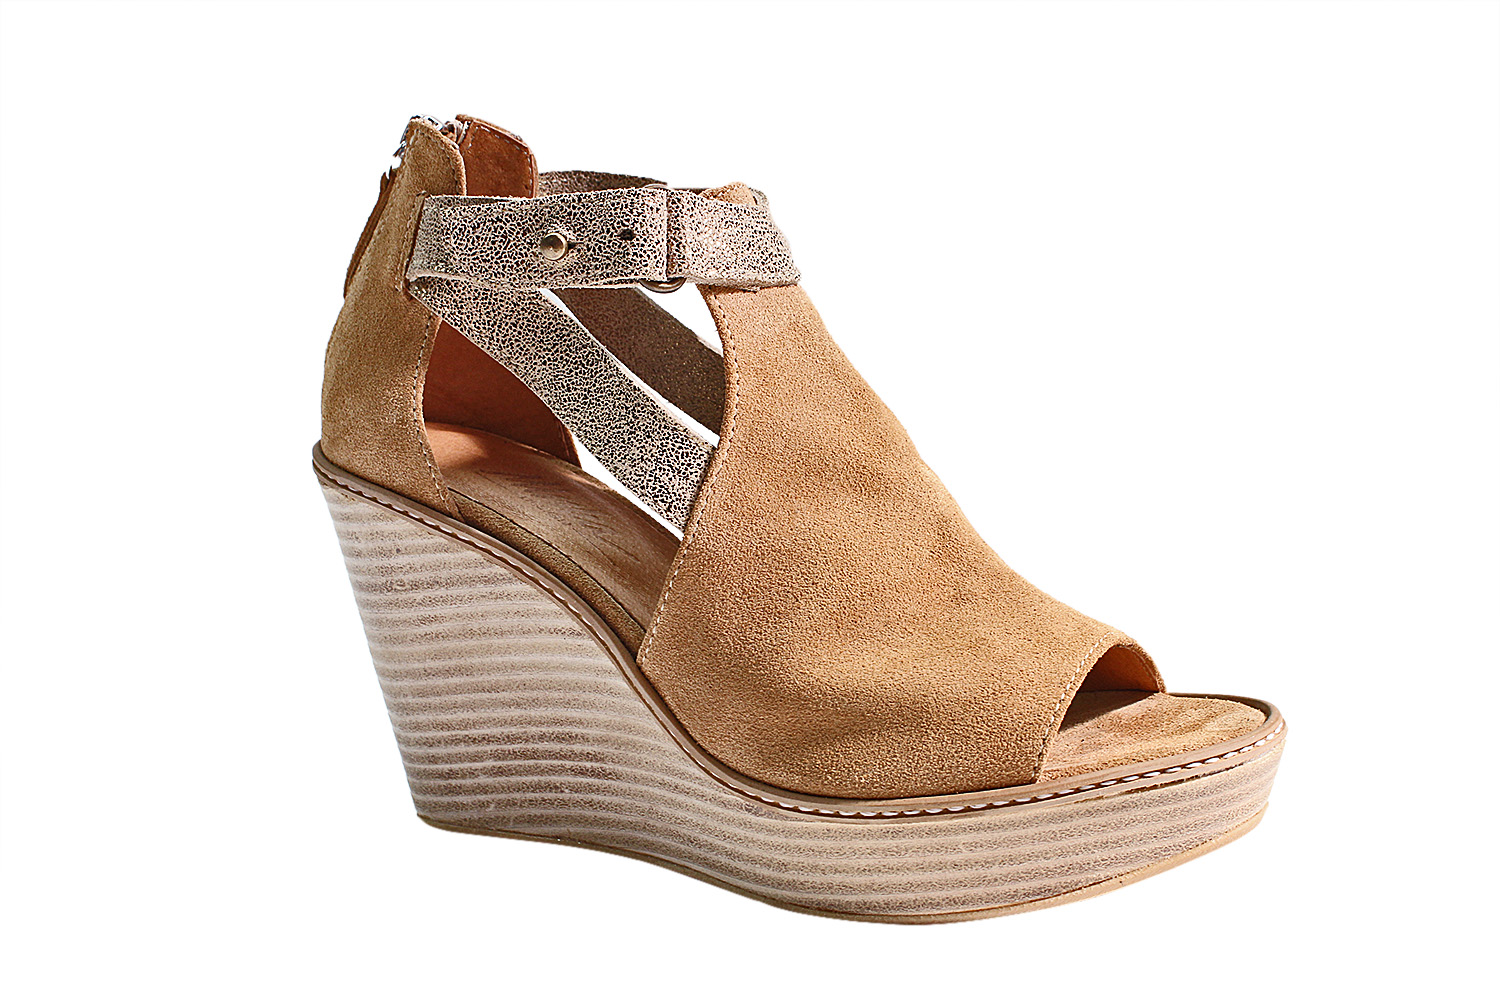 8342-MAYELL-PORTUGALLO 314BIS-LAURA BRONZE-SEMELLE BLOC CUIR-FORME DEEJAY